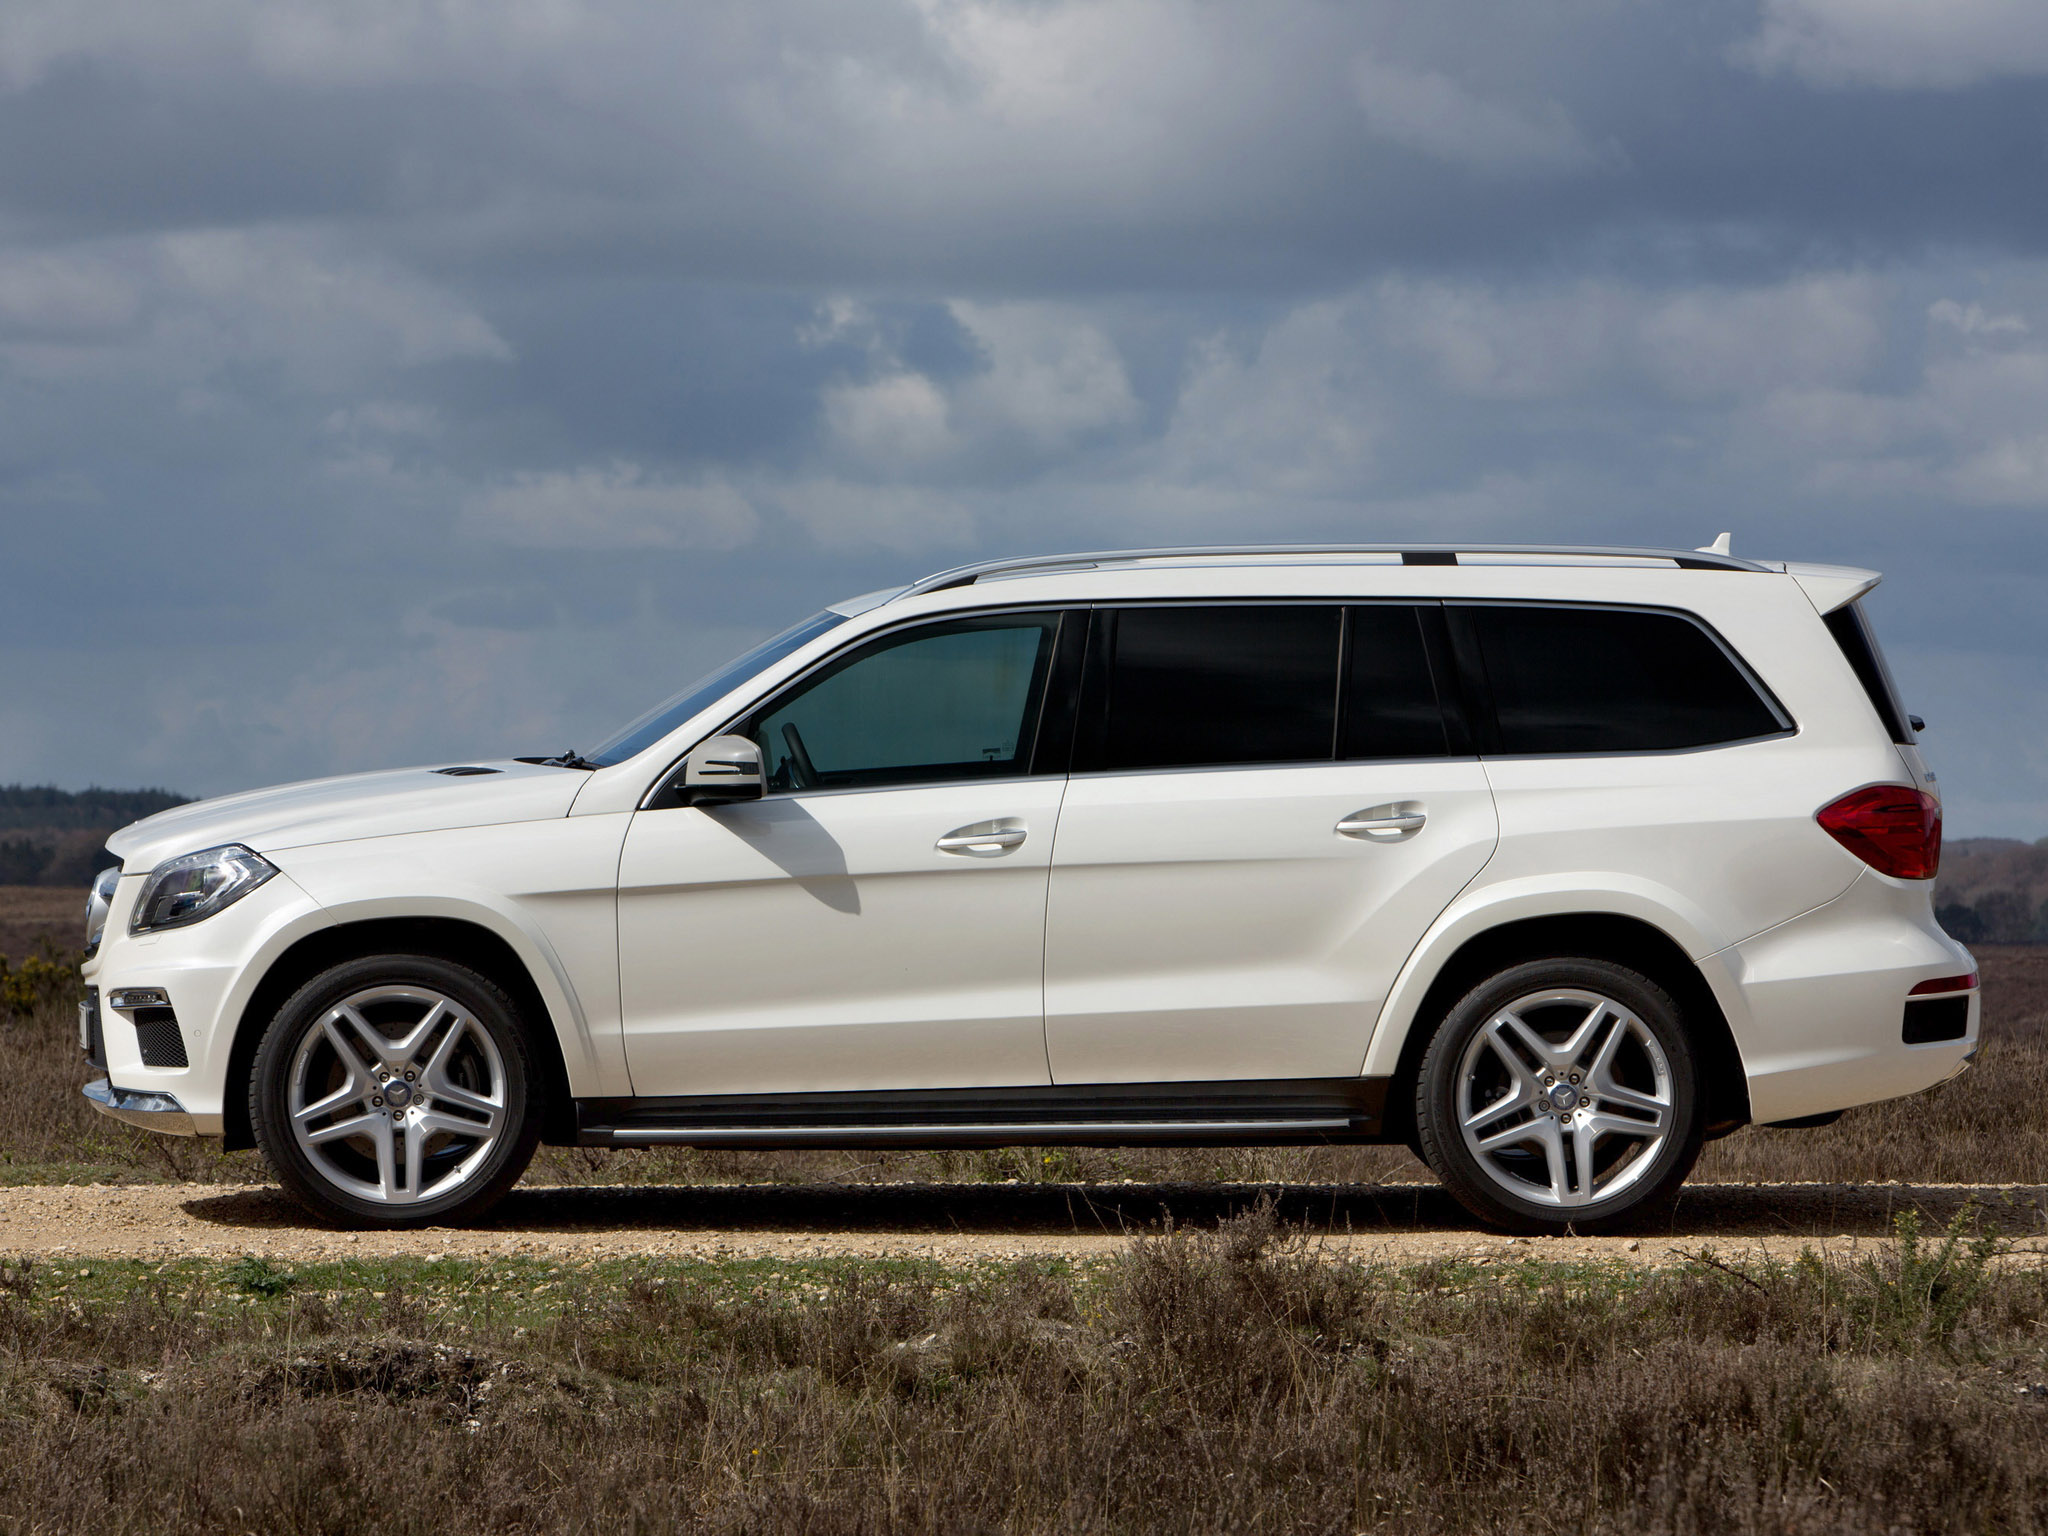 2013-Mercedes-GL-350-BlueTec-AMG-Sports-X166-UK-white-car-side